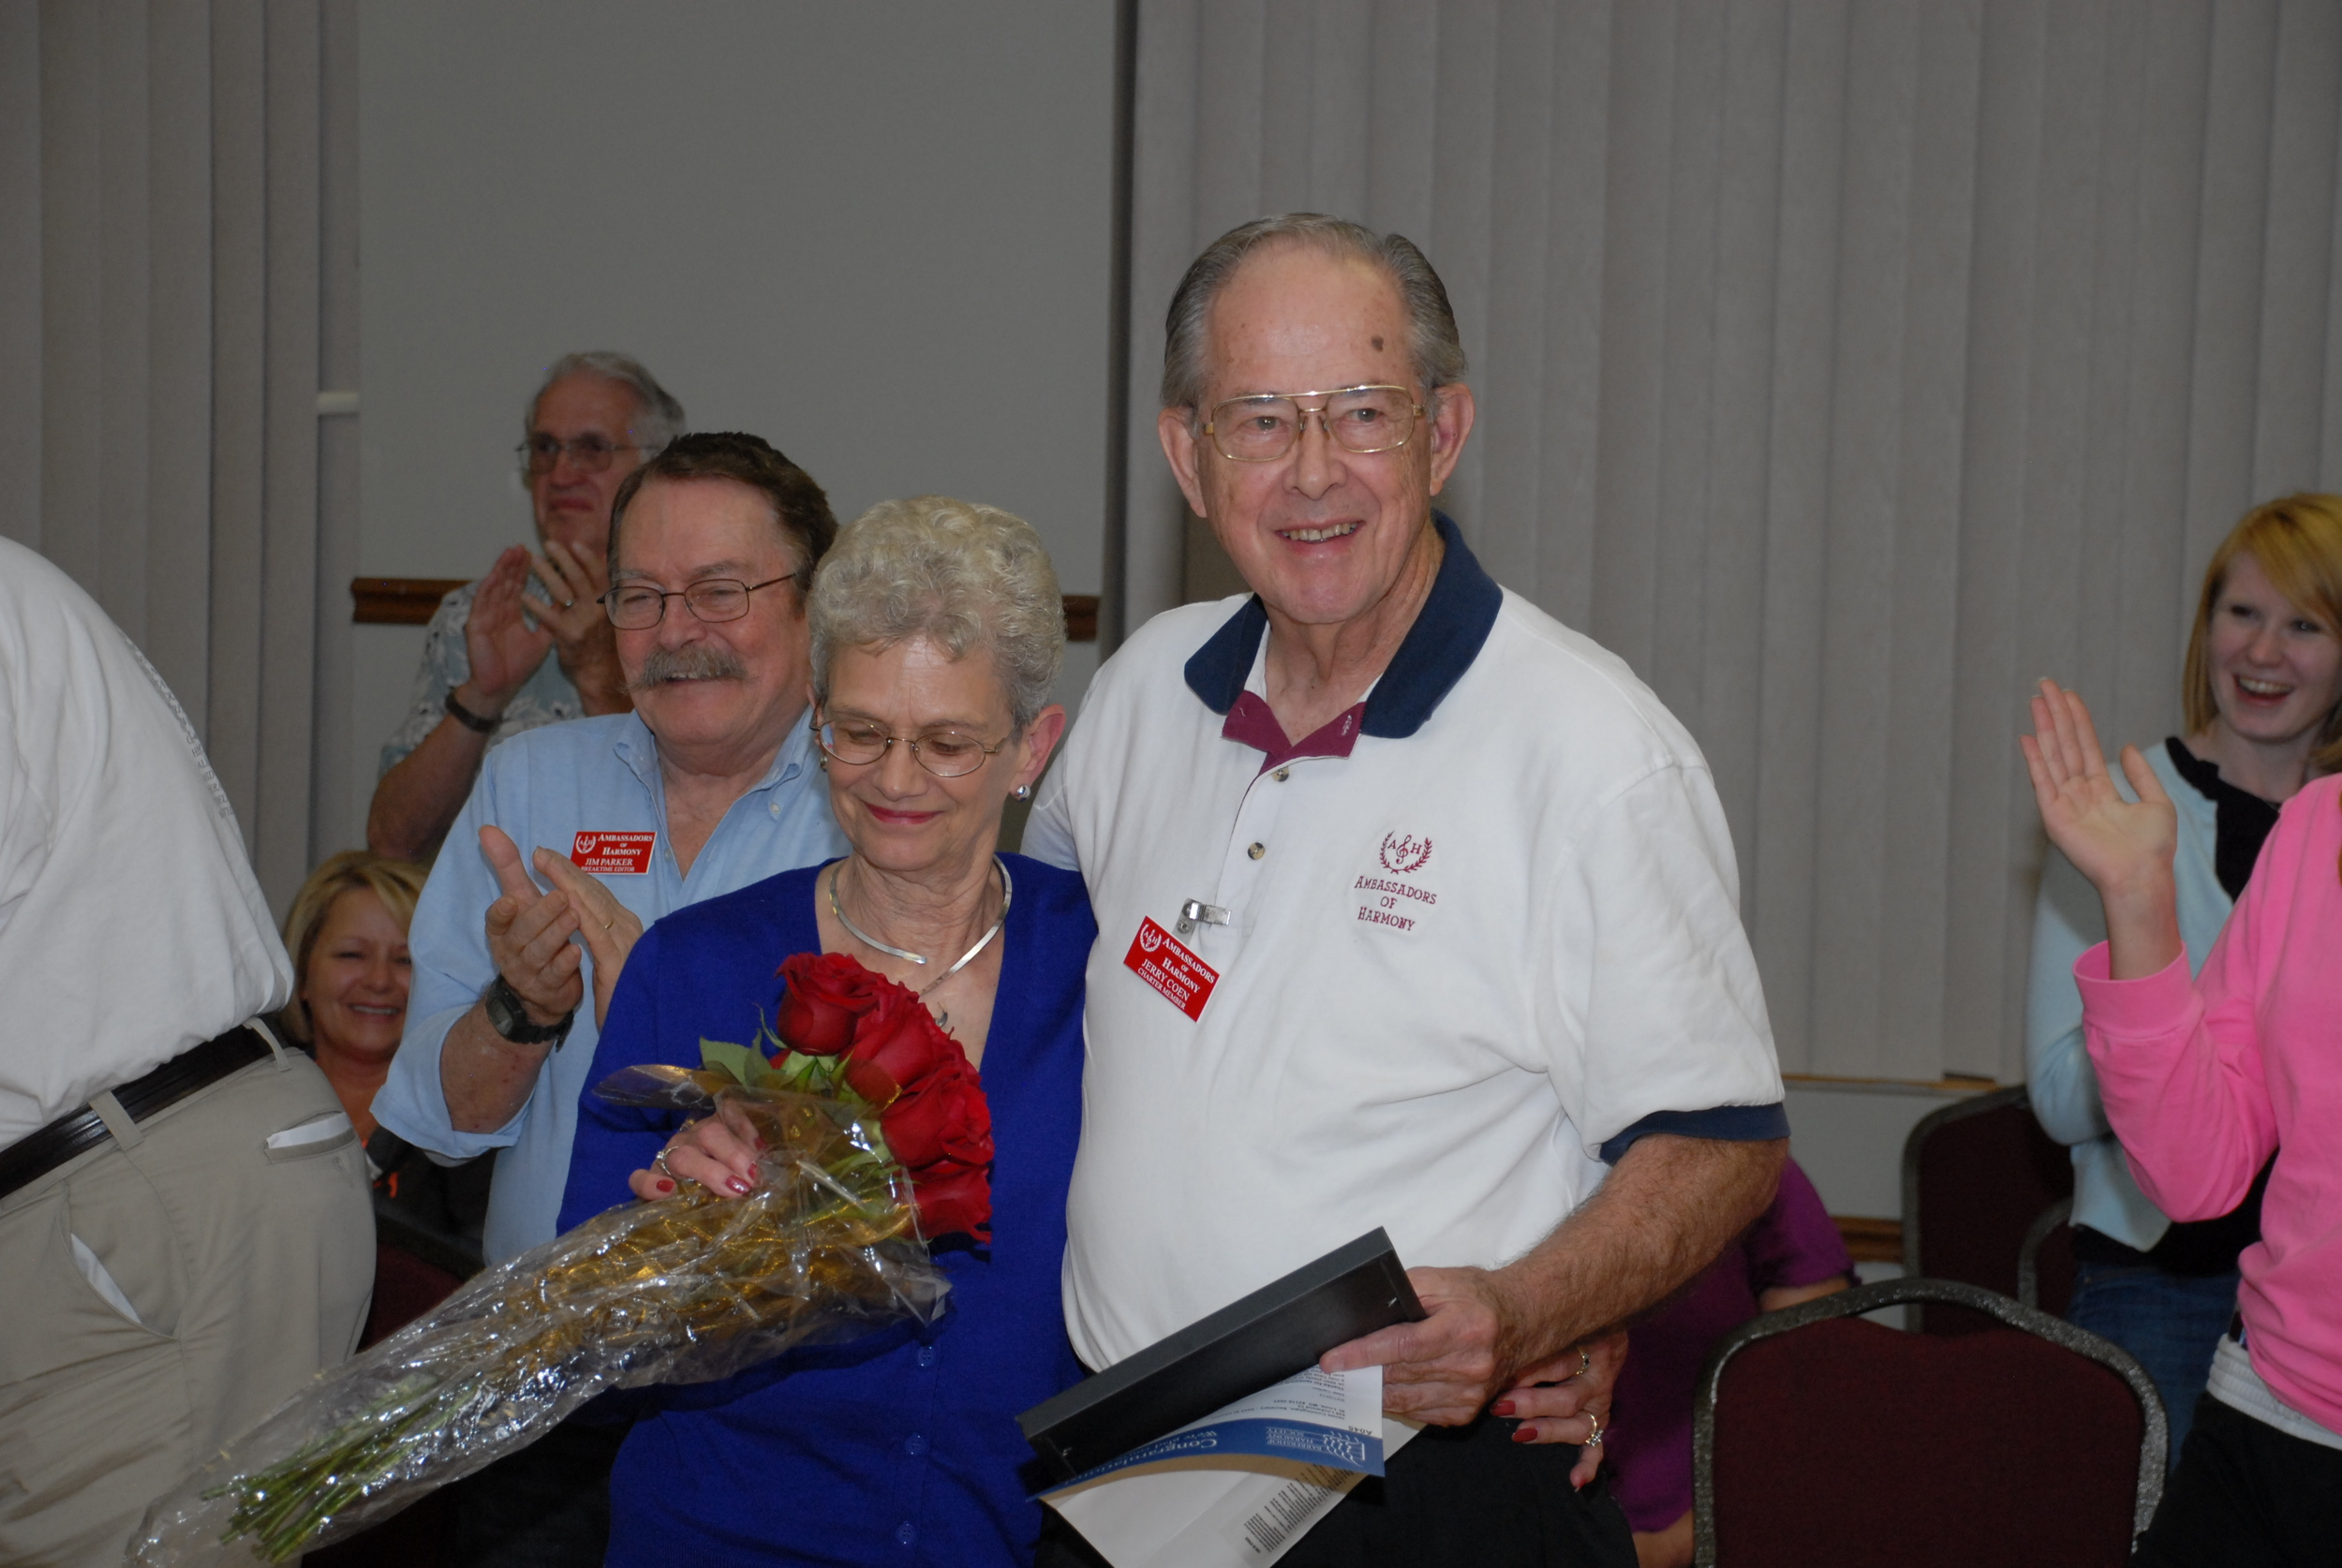 Shirley Coen, left, joins her husband, Jerry, as he receives a 50-year pin and letter congratulating five decades of membership in the Ambassadors of Harmony.Photo by Bob Griesedieck